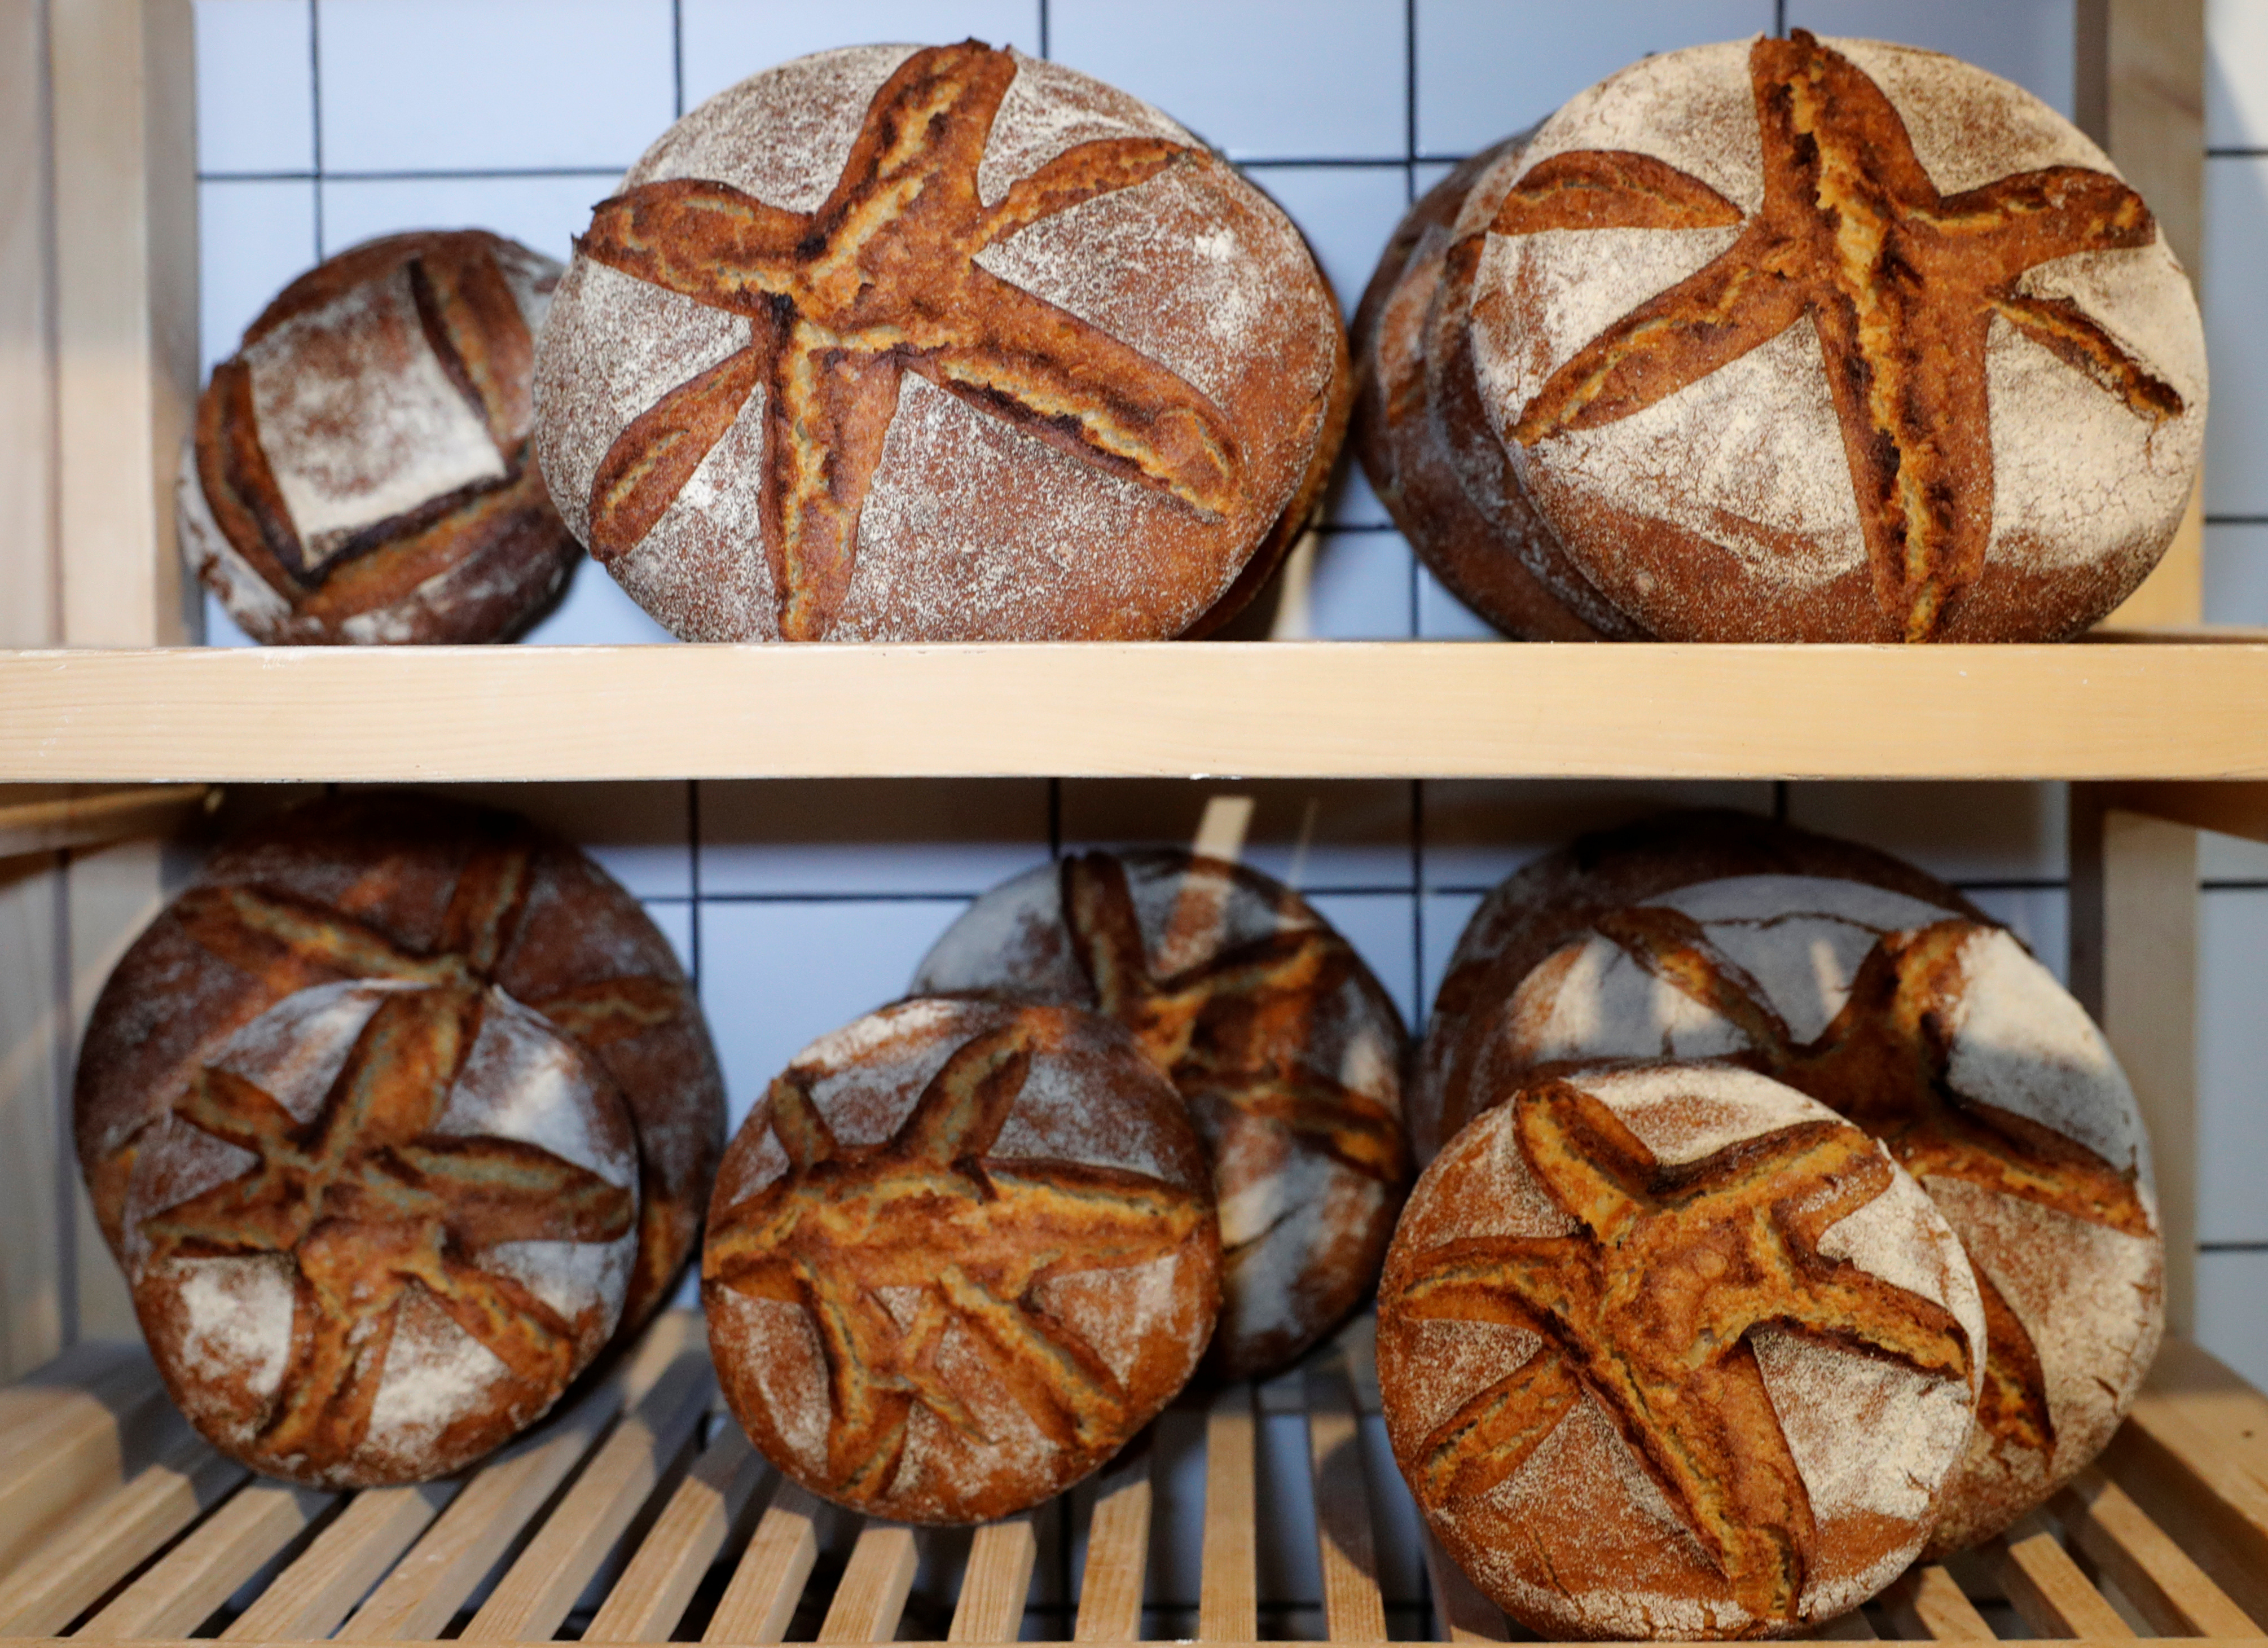 The scientific case for eating bread